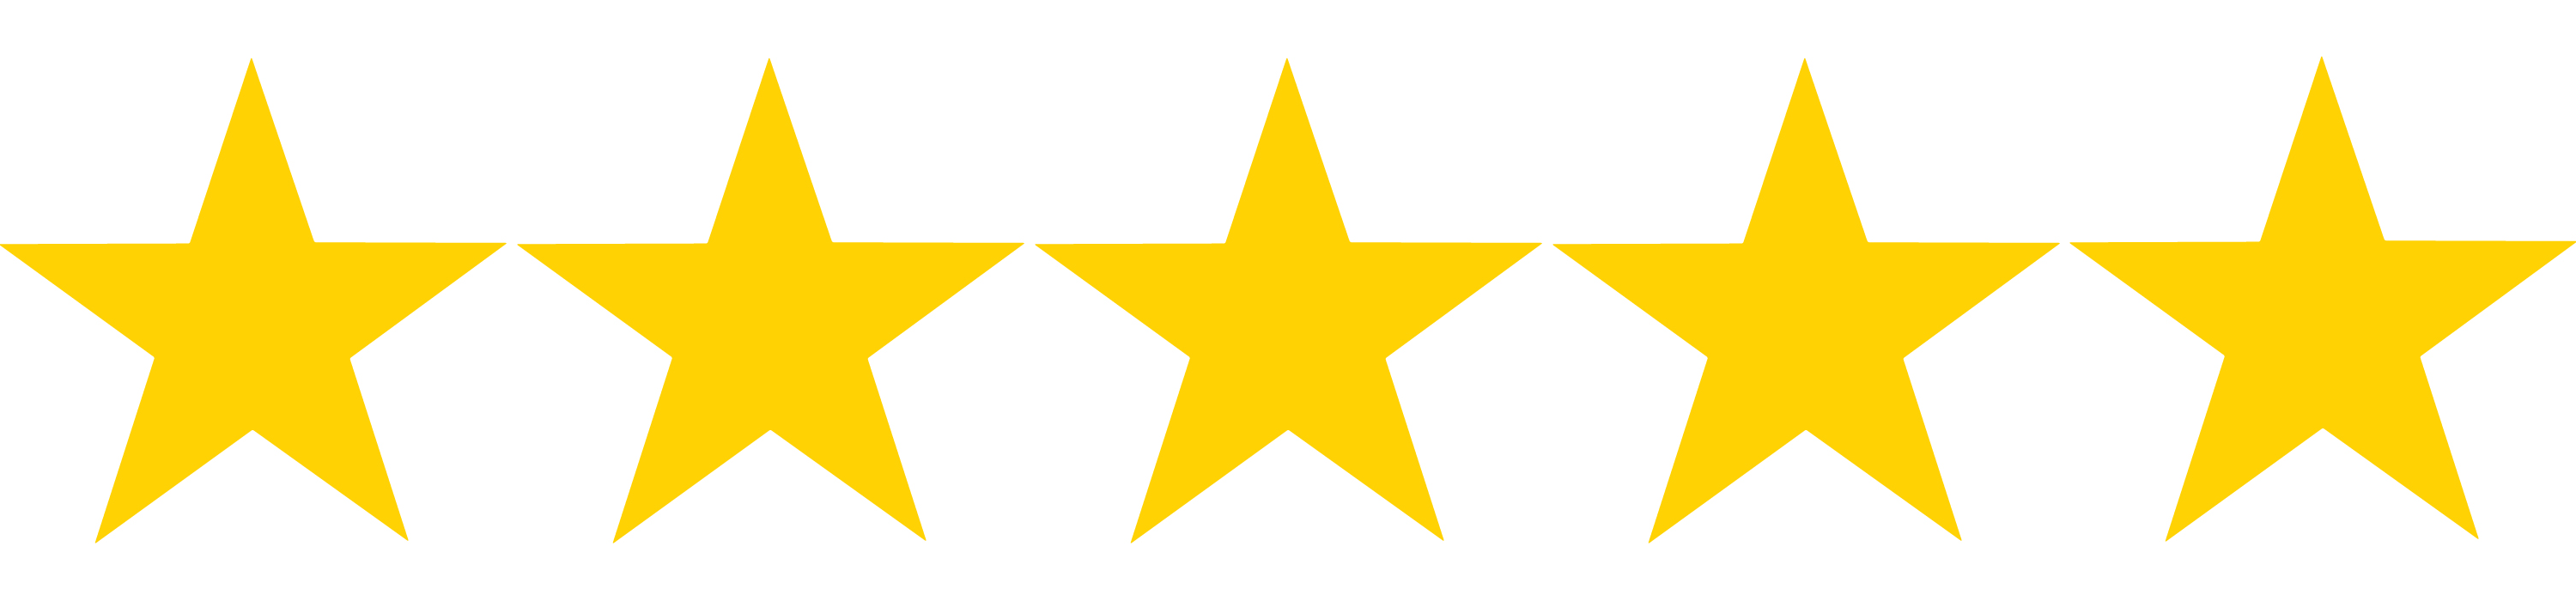 Yellow Stars PNG HD Transparent Yellow Stars HD.PNG Images ...